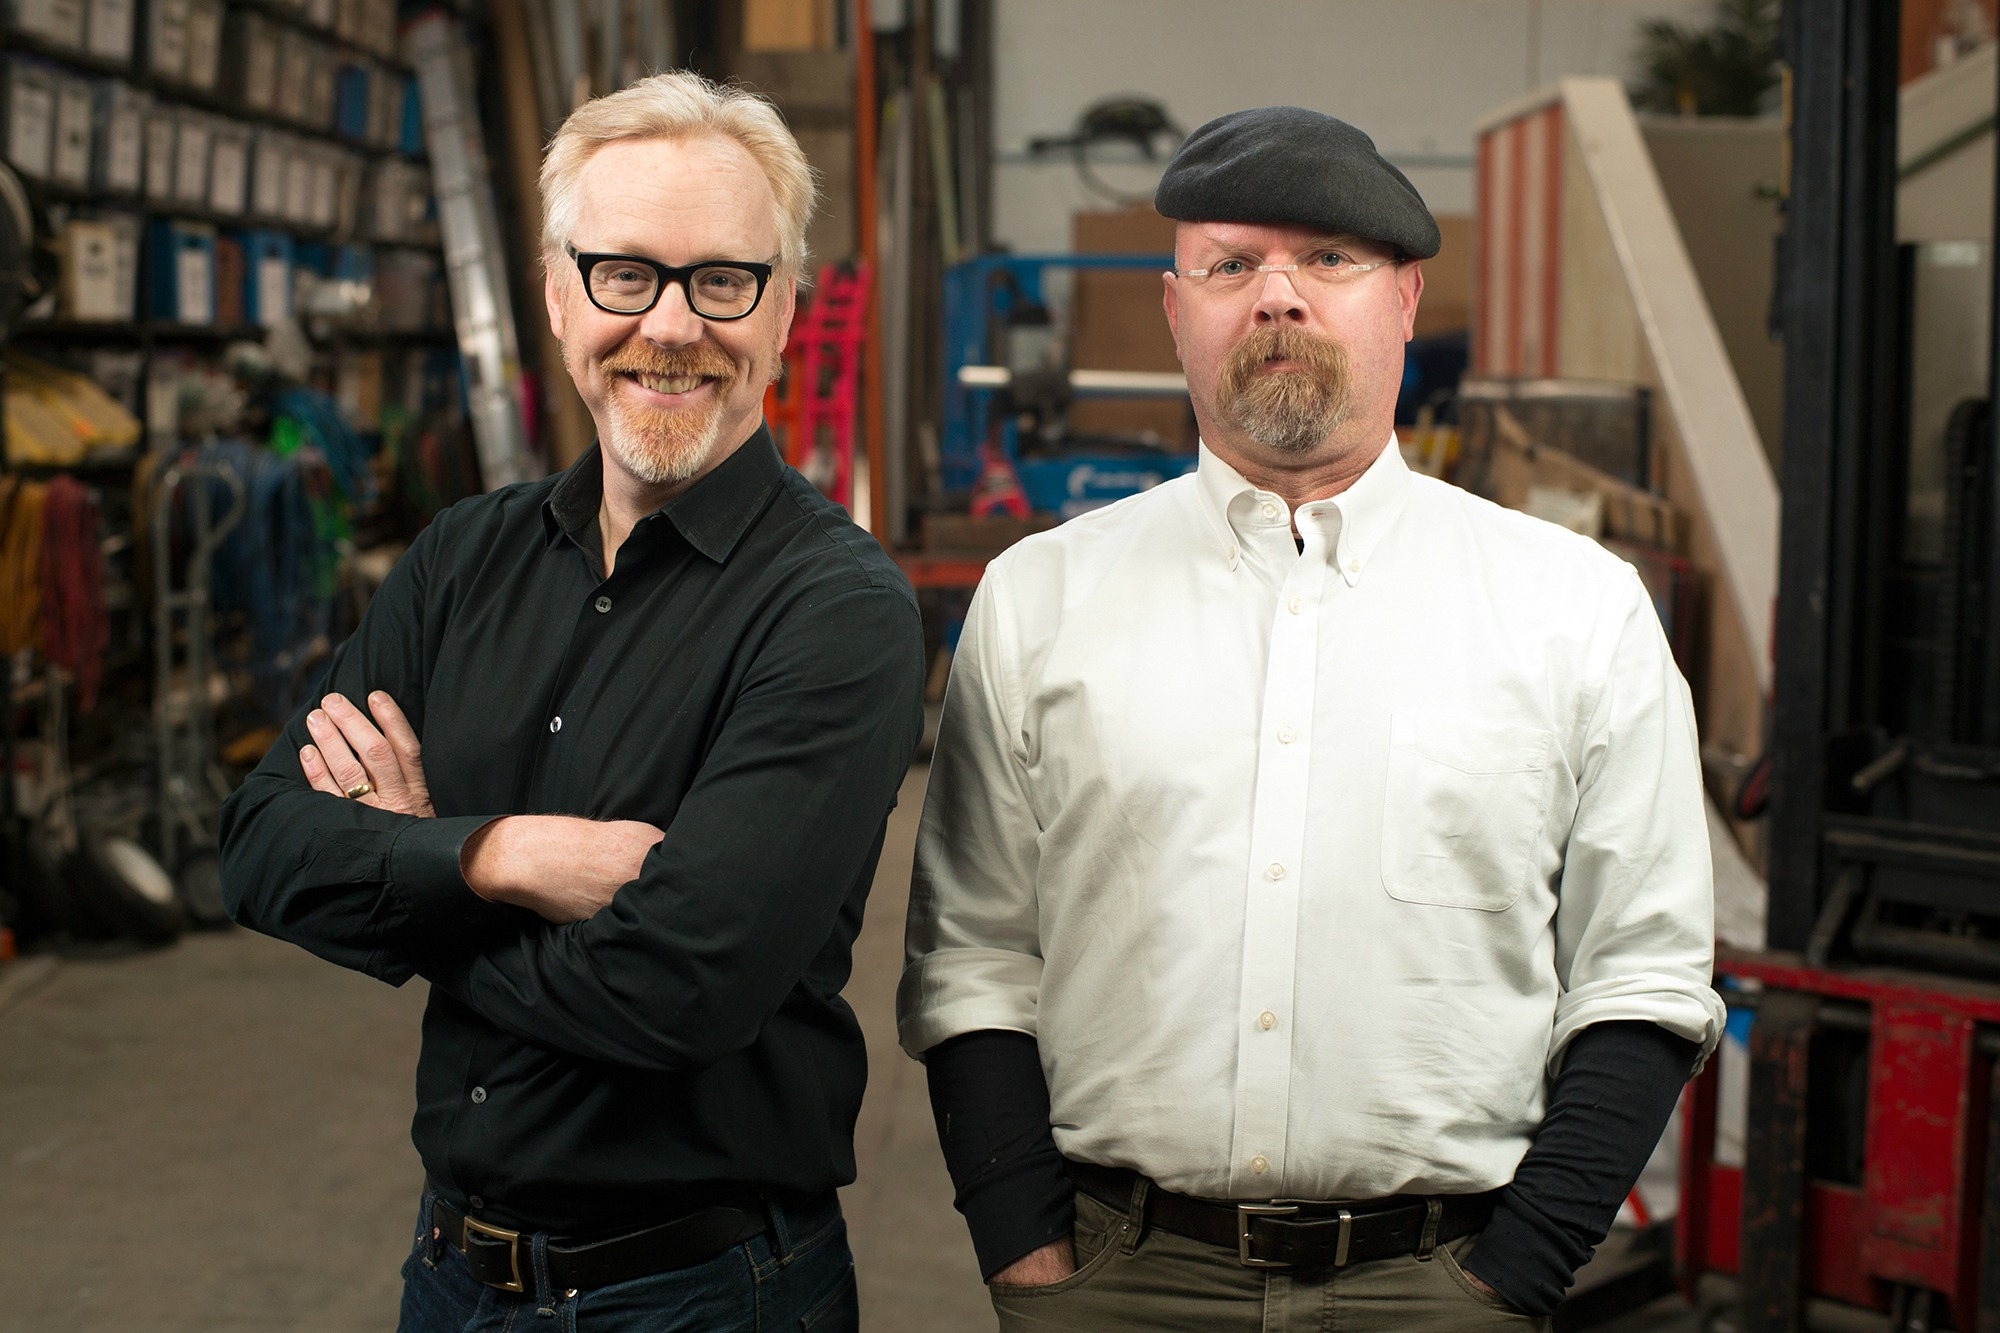 'MythBusters' and More from Discovery Being Filmed in VR